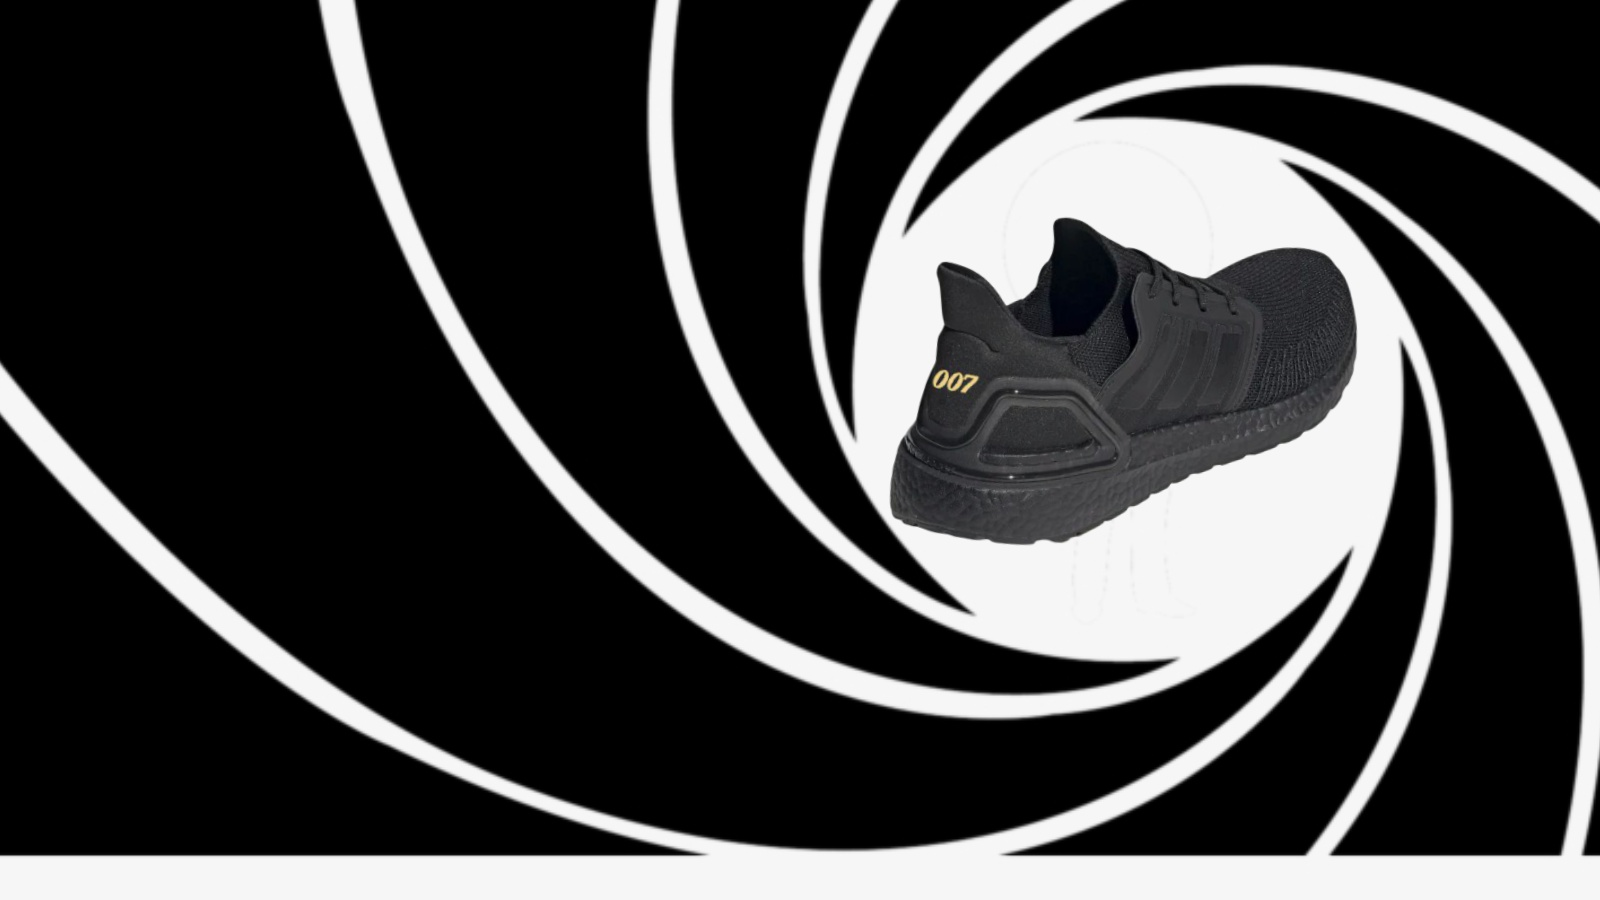 Indefinido pista cliente  James Bond x Adidas ultraBOOST 20 design is fit for any secret agent